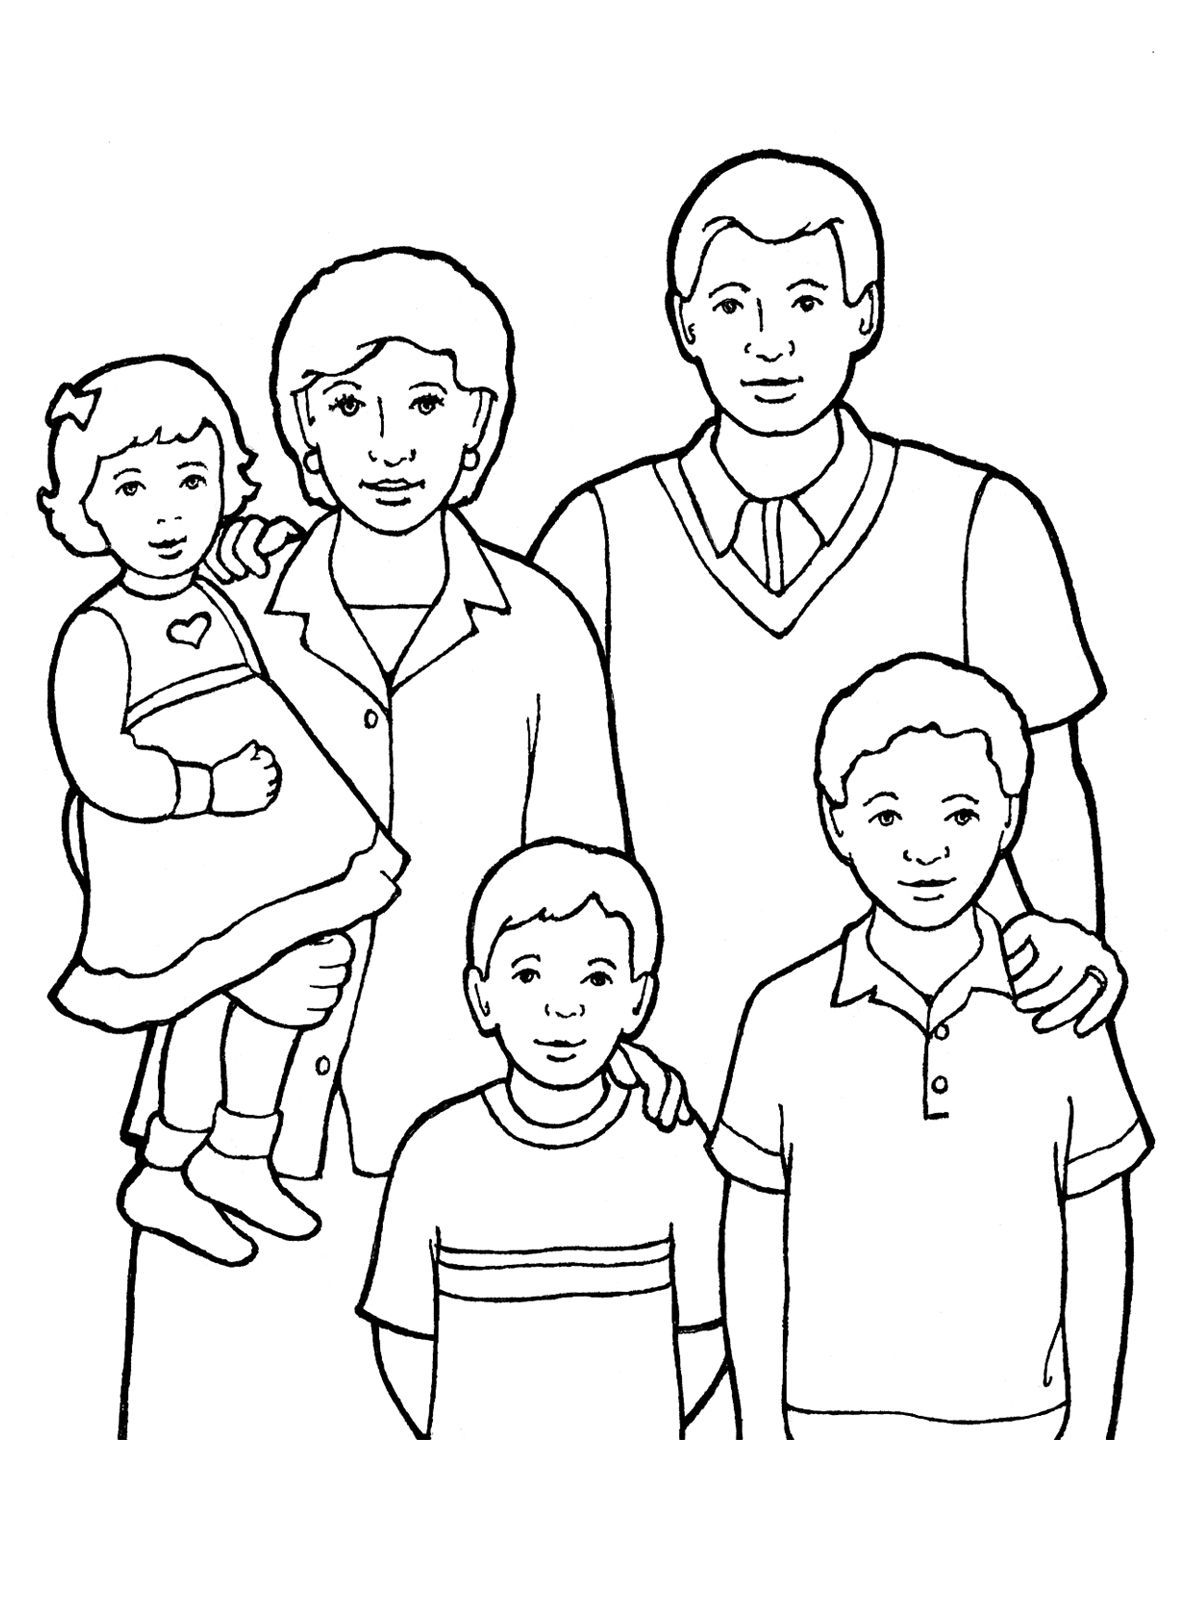 coloring pages family members - photo#23